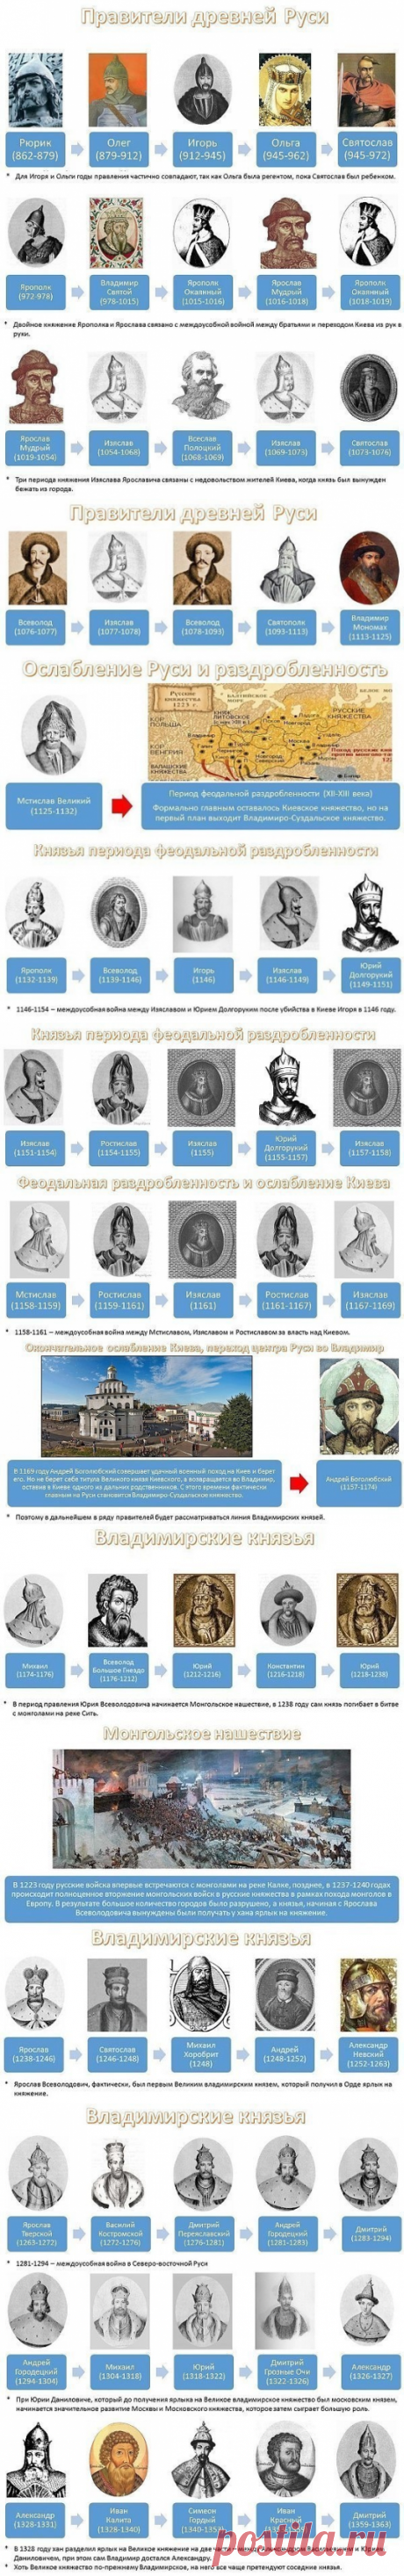 Governors of Ancient Russia.